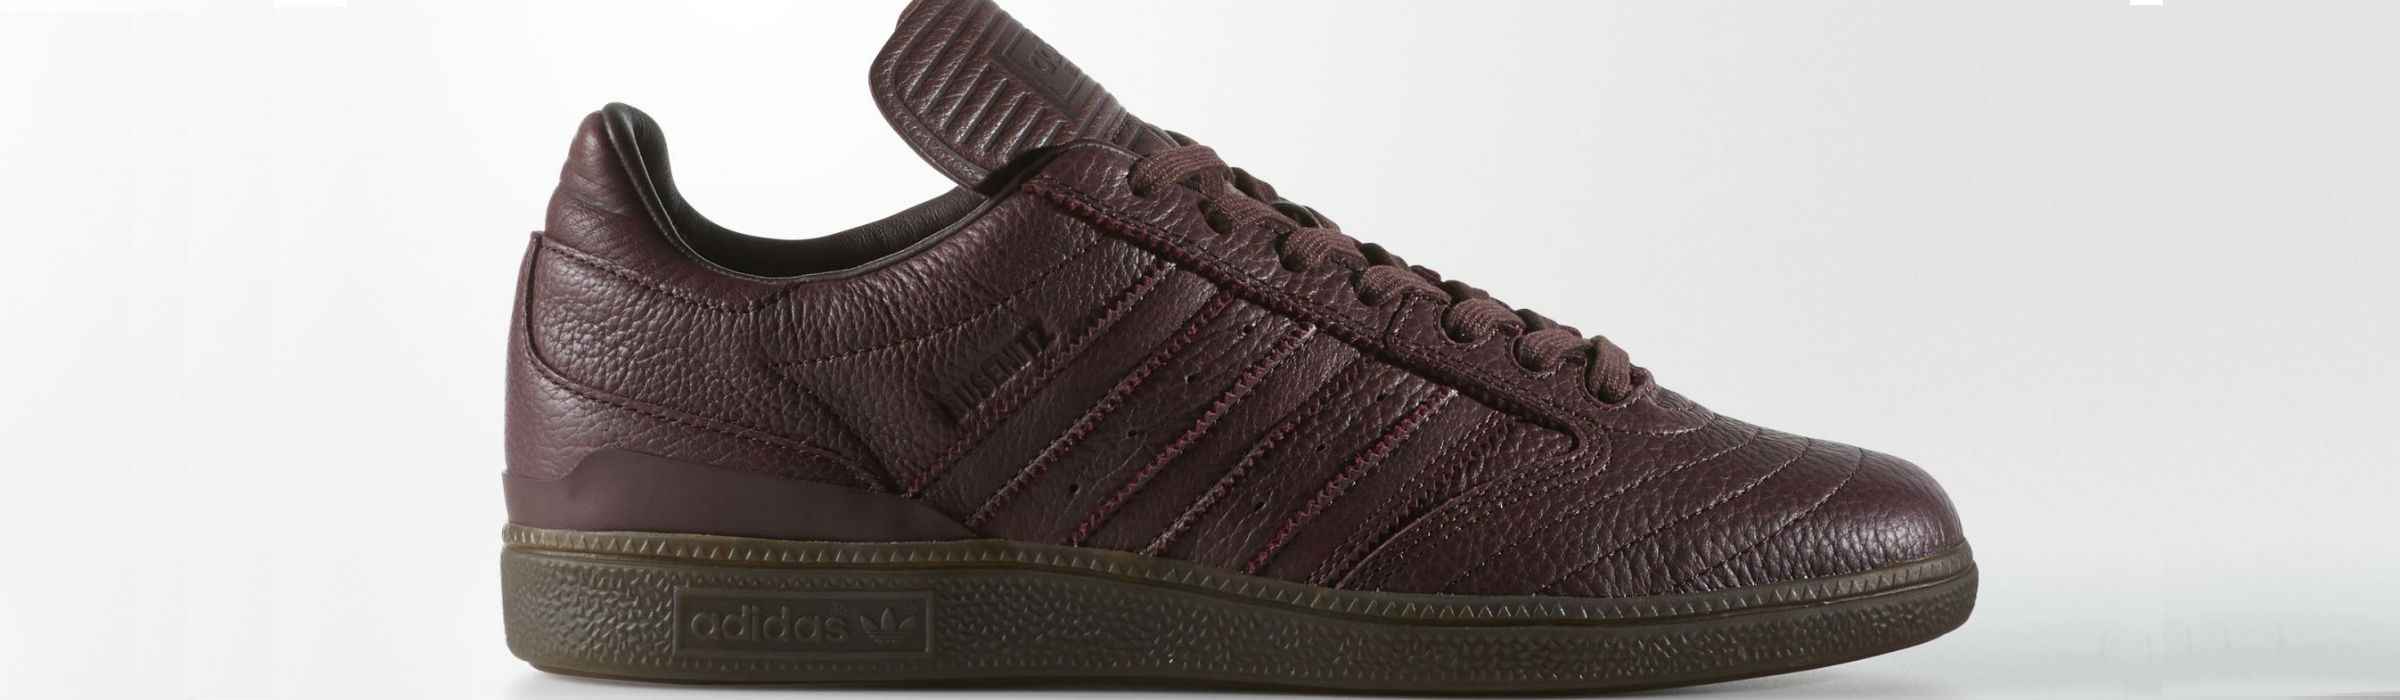 Adidas Busenitz Shoes Night Red Gum Full